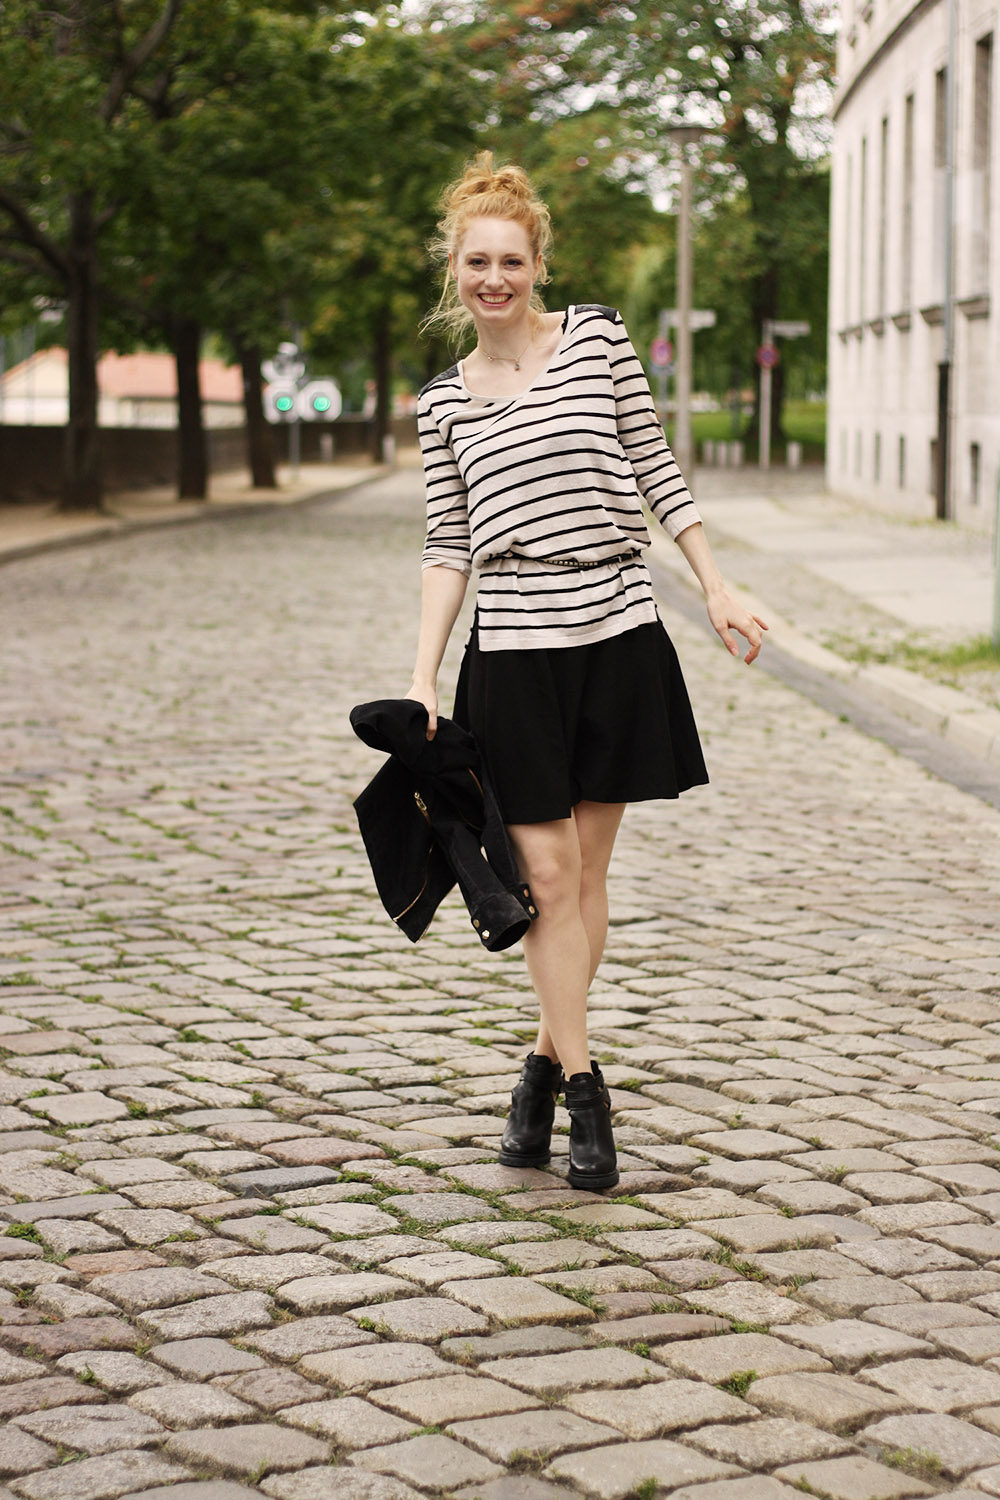 Advanceyourstyle, Modeblog, Fashionblog, Berlin, Outfit, Look, Style, Herbst, herbstliche Basics, vollständiges Outfit